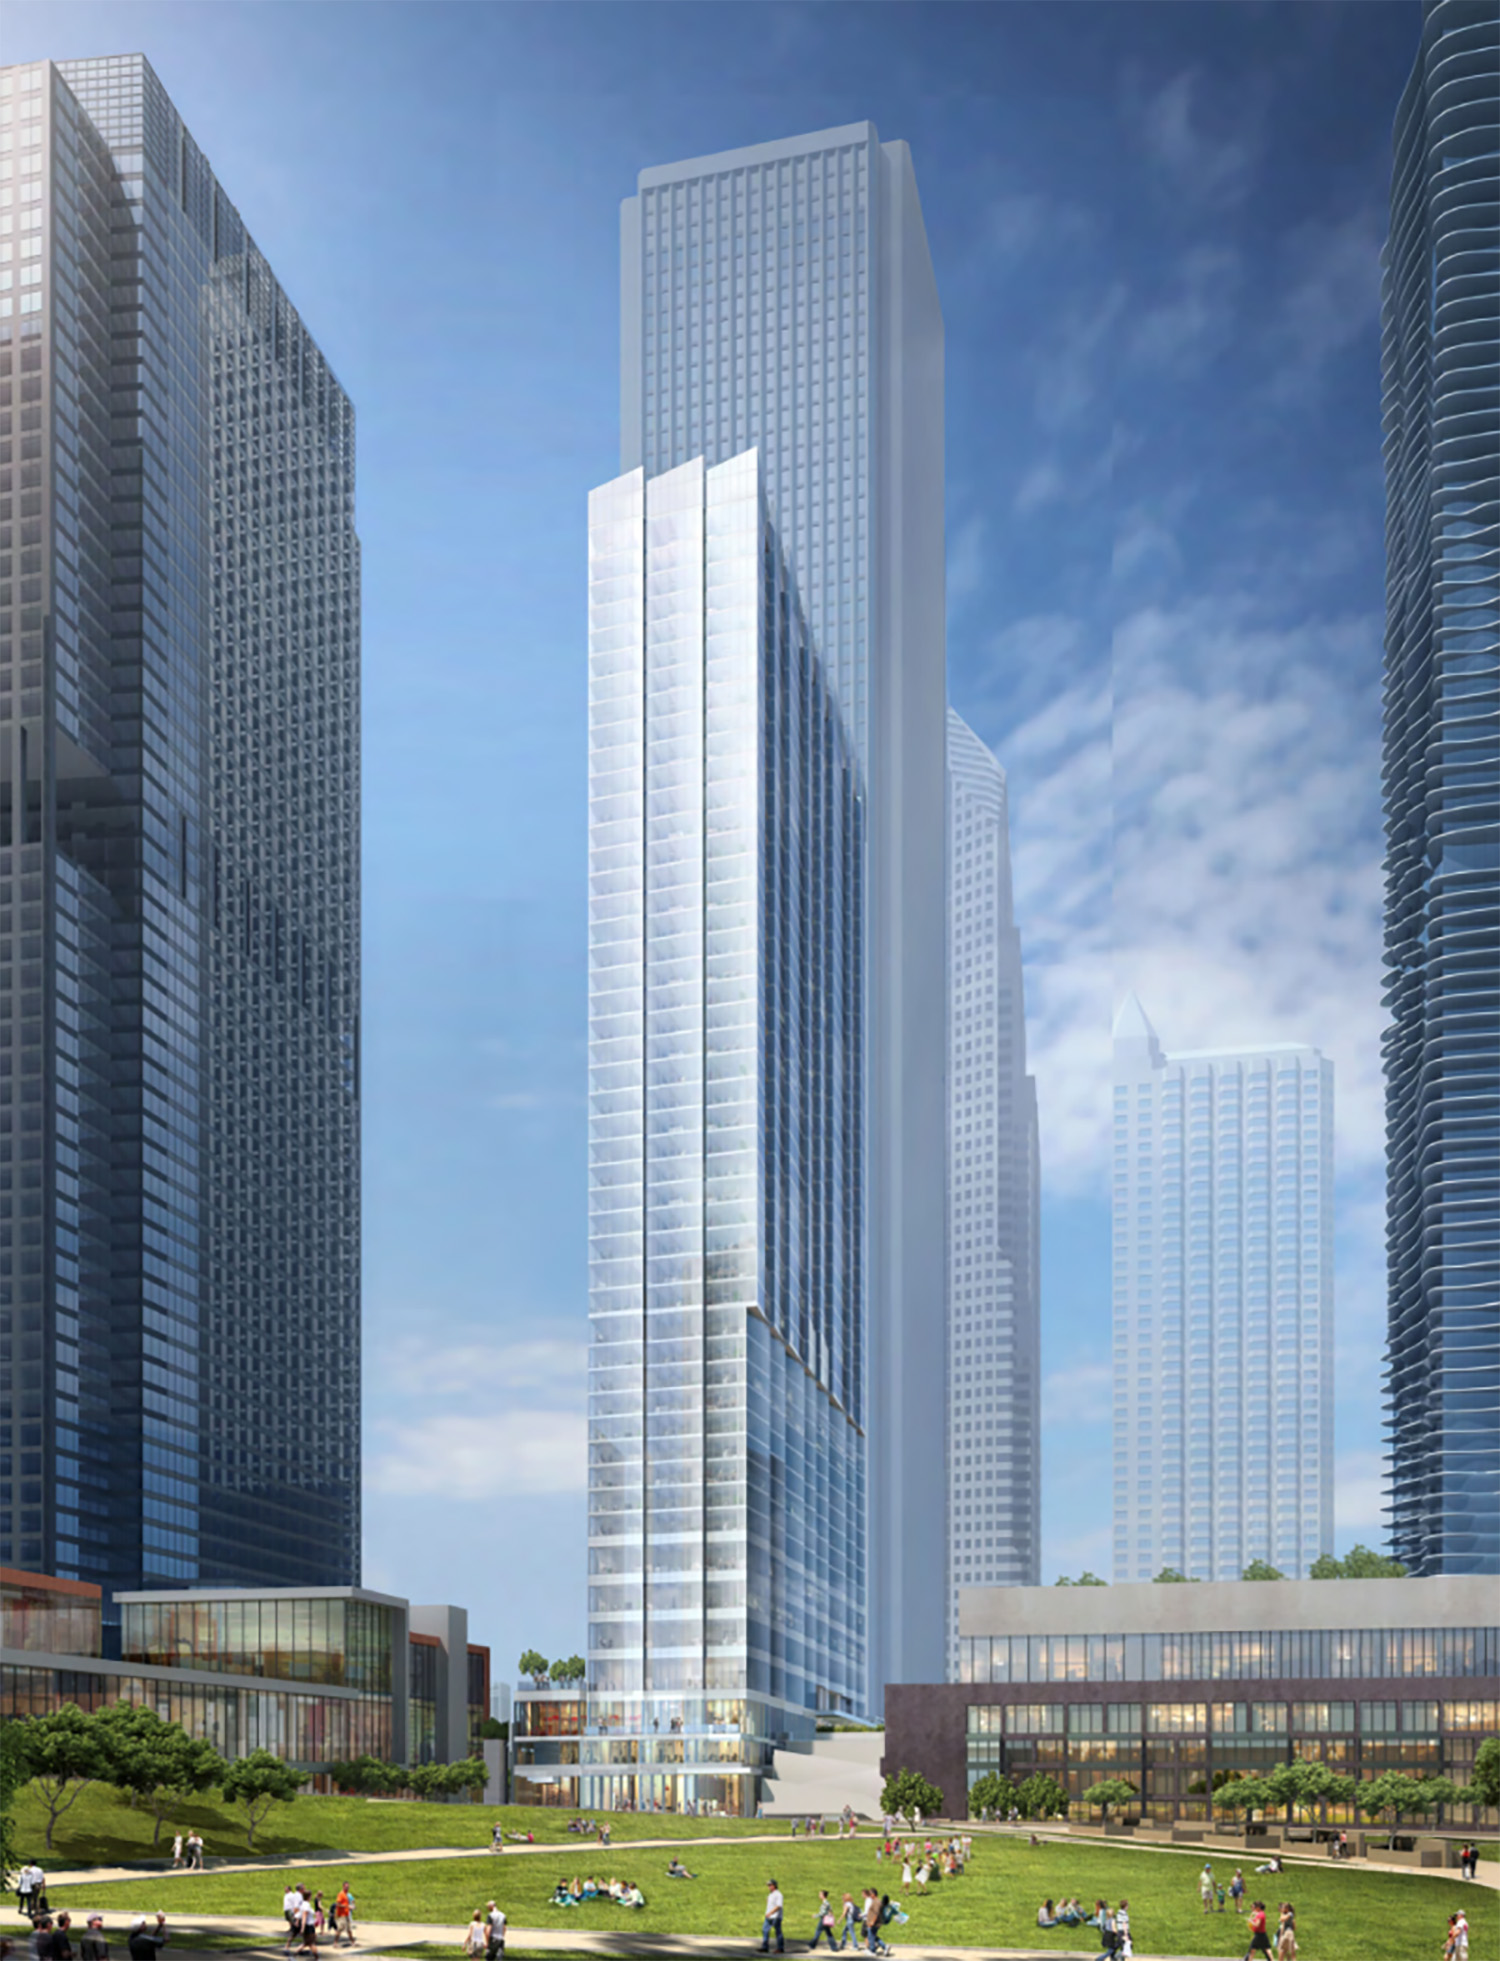 Northeast View of Revised Design for Parcel O Tower. Rendering by bKL Architecture